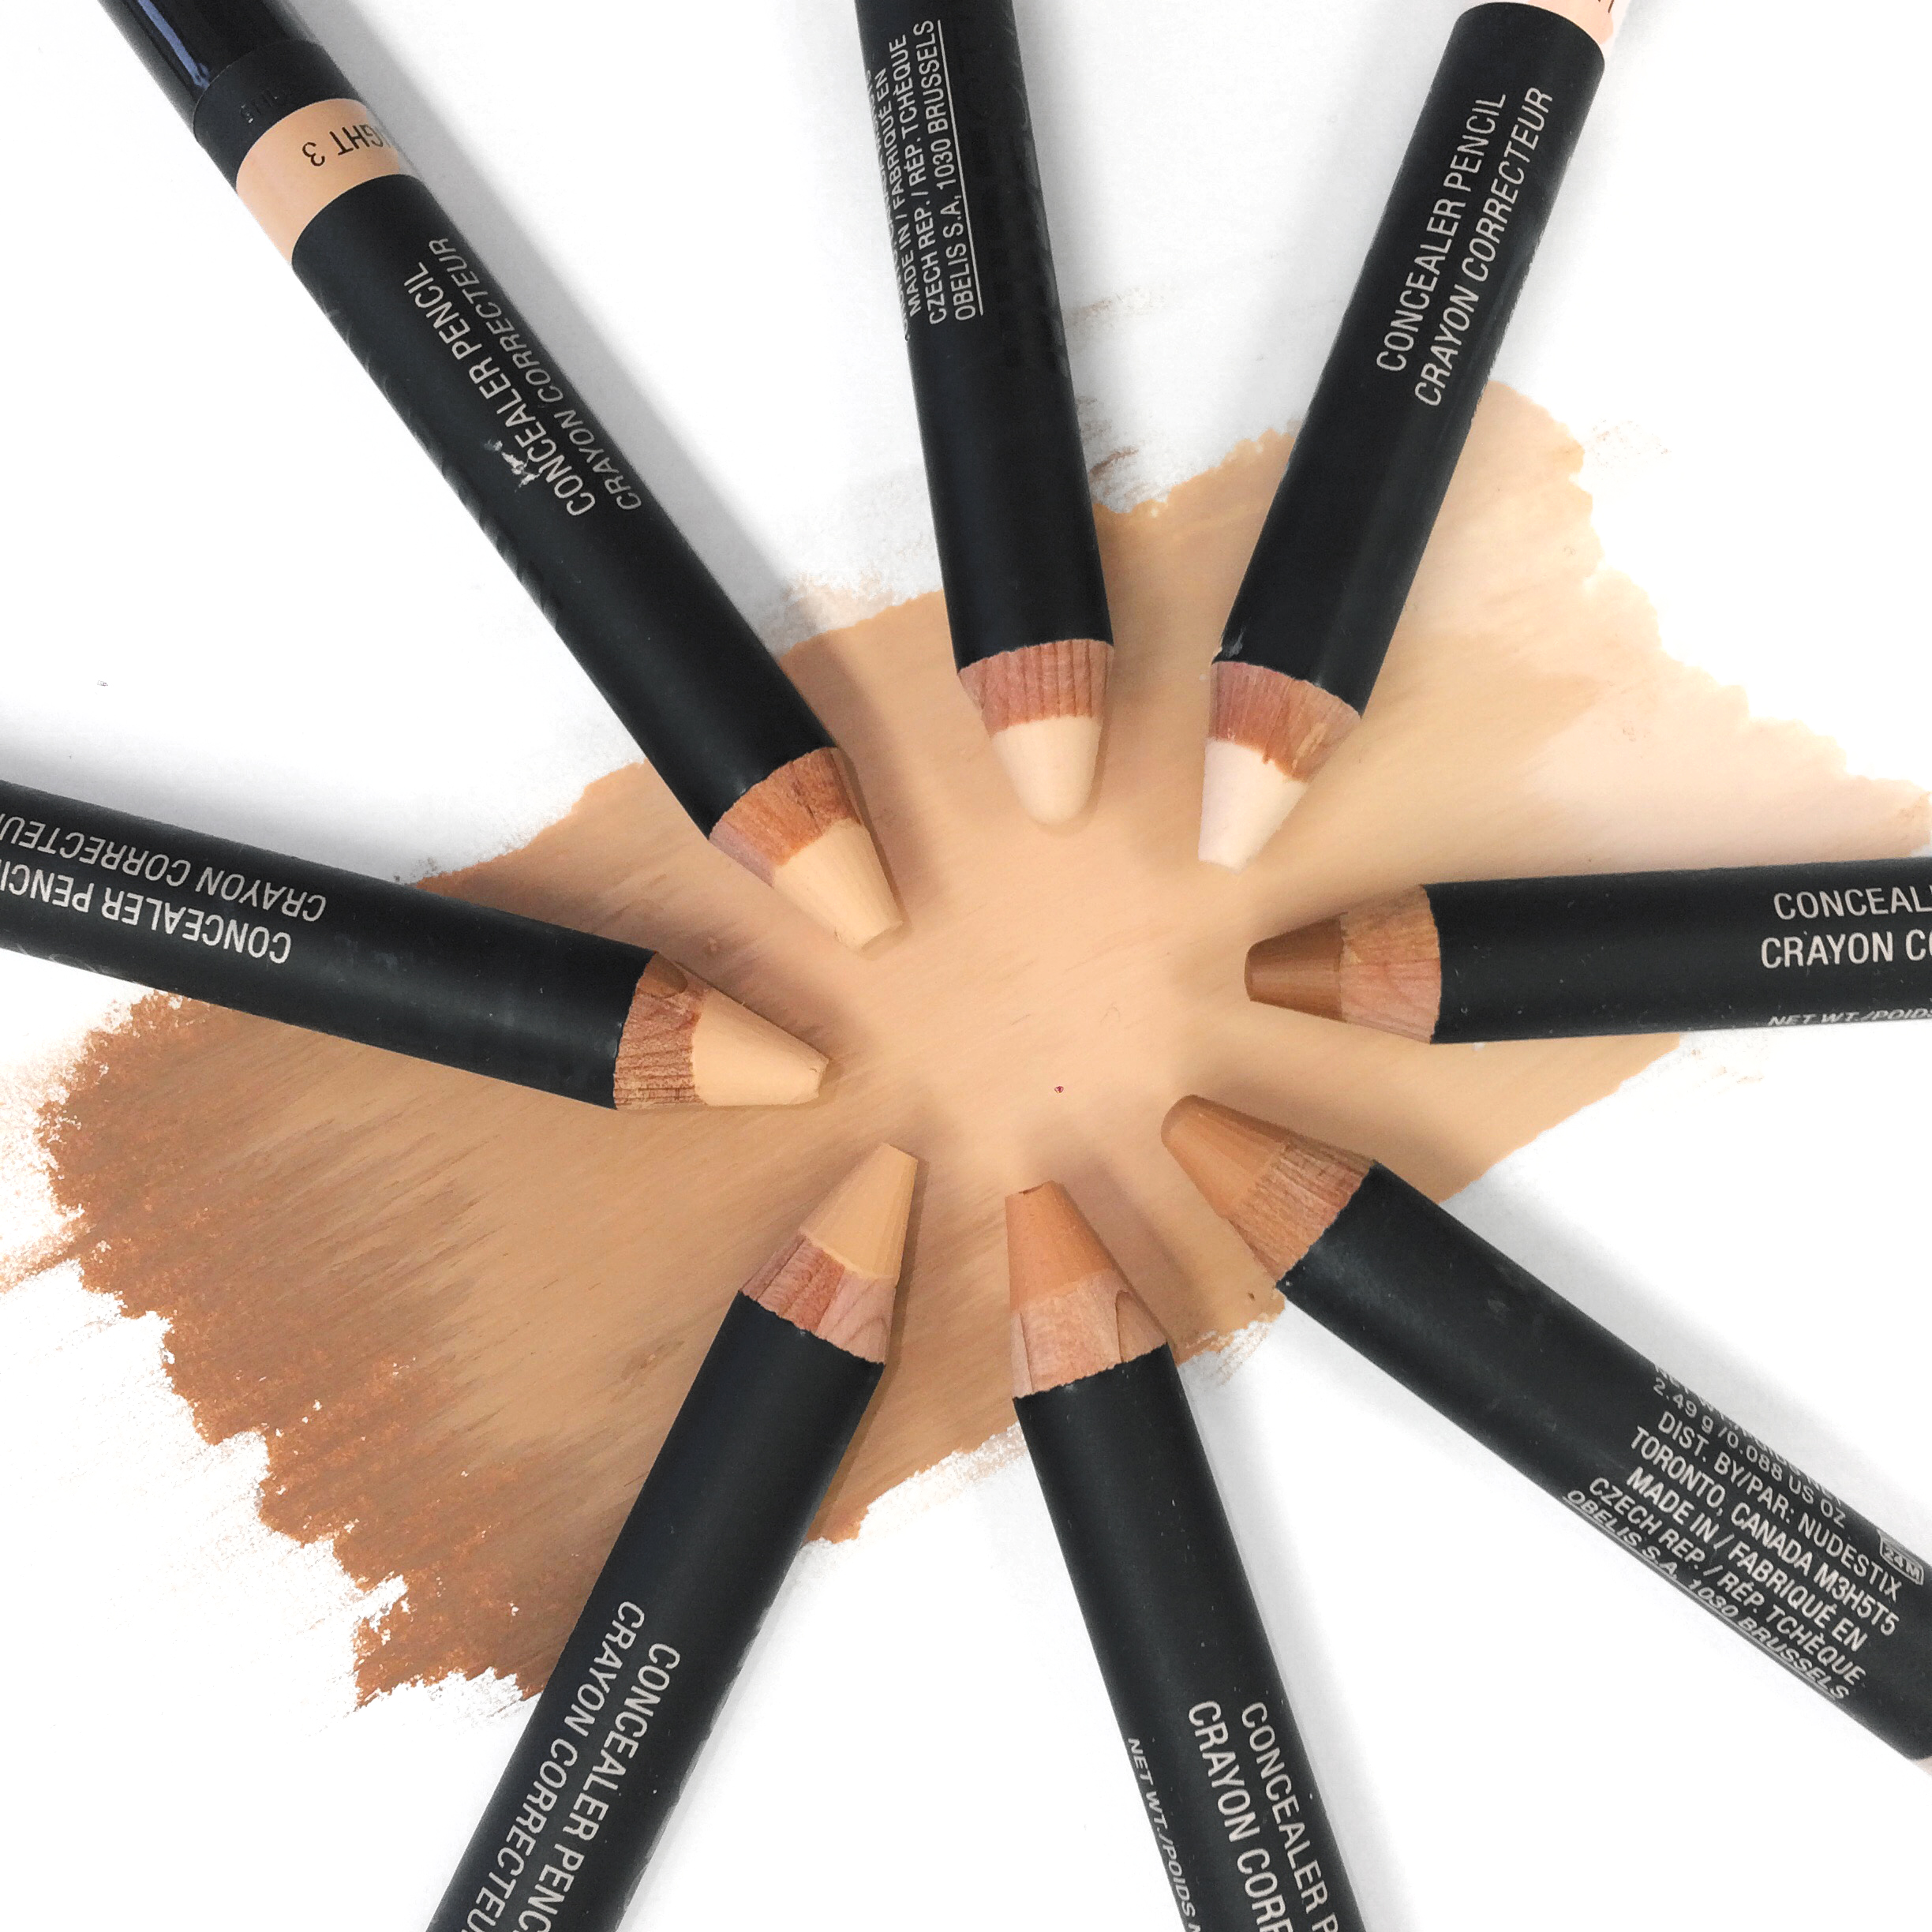 7 All The Latest Beauty Launches That Deserve A Spot In Your Makeup Box - NudeStix Concealer